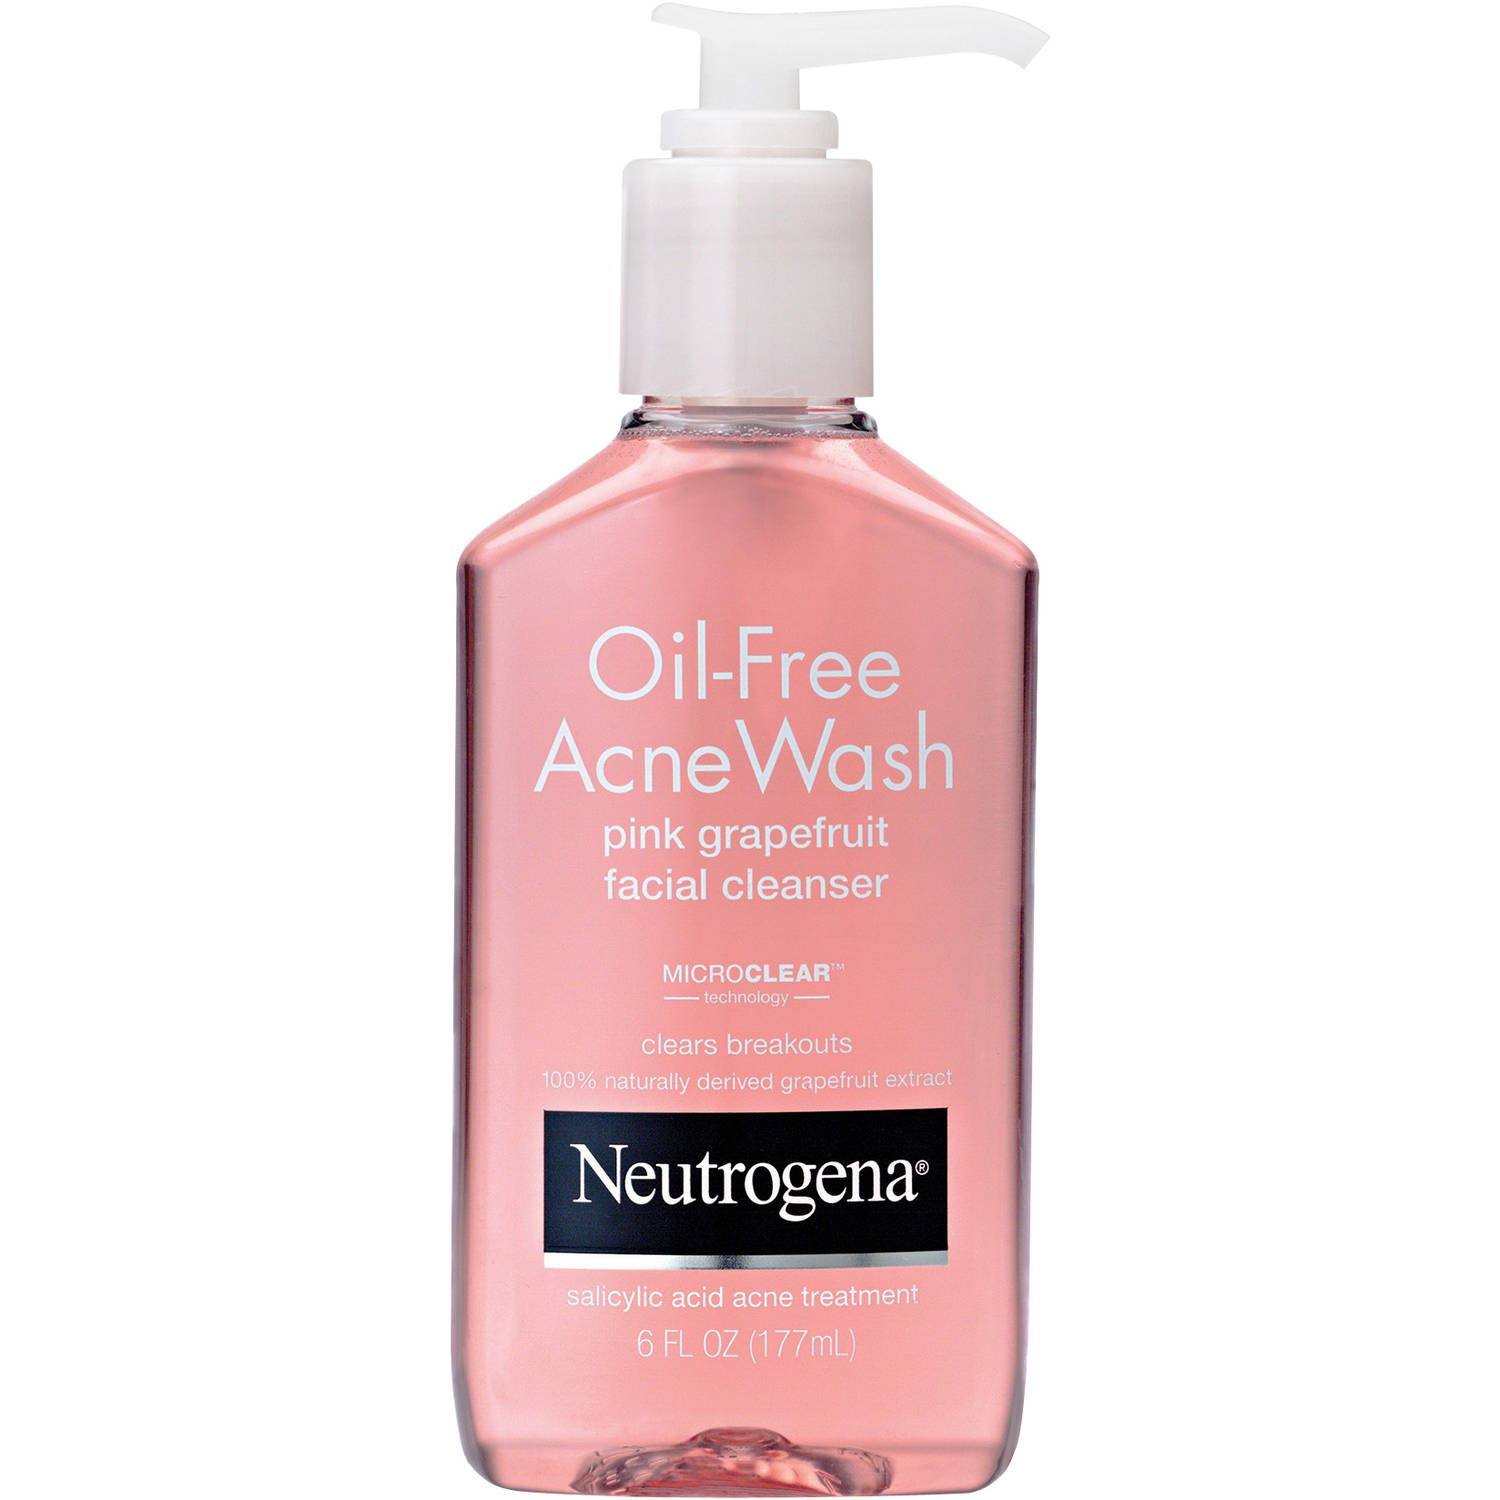 Neutrogena Oil-Free Acne Wash